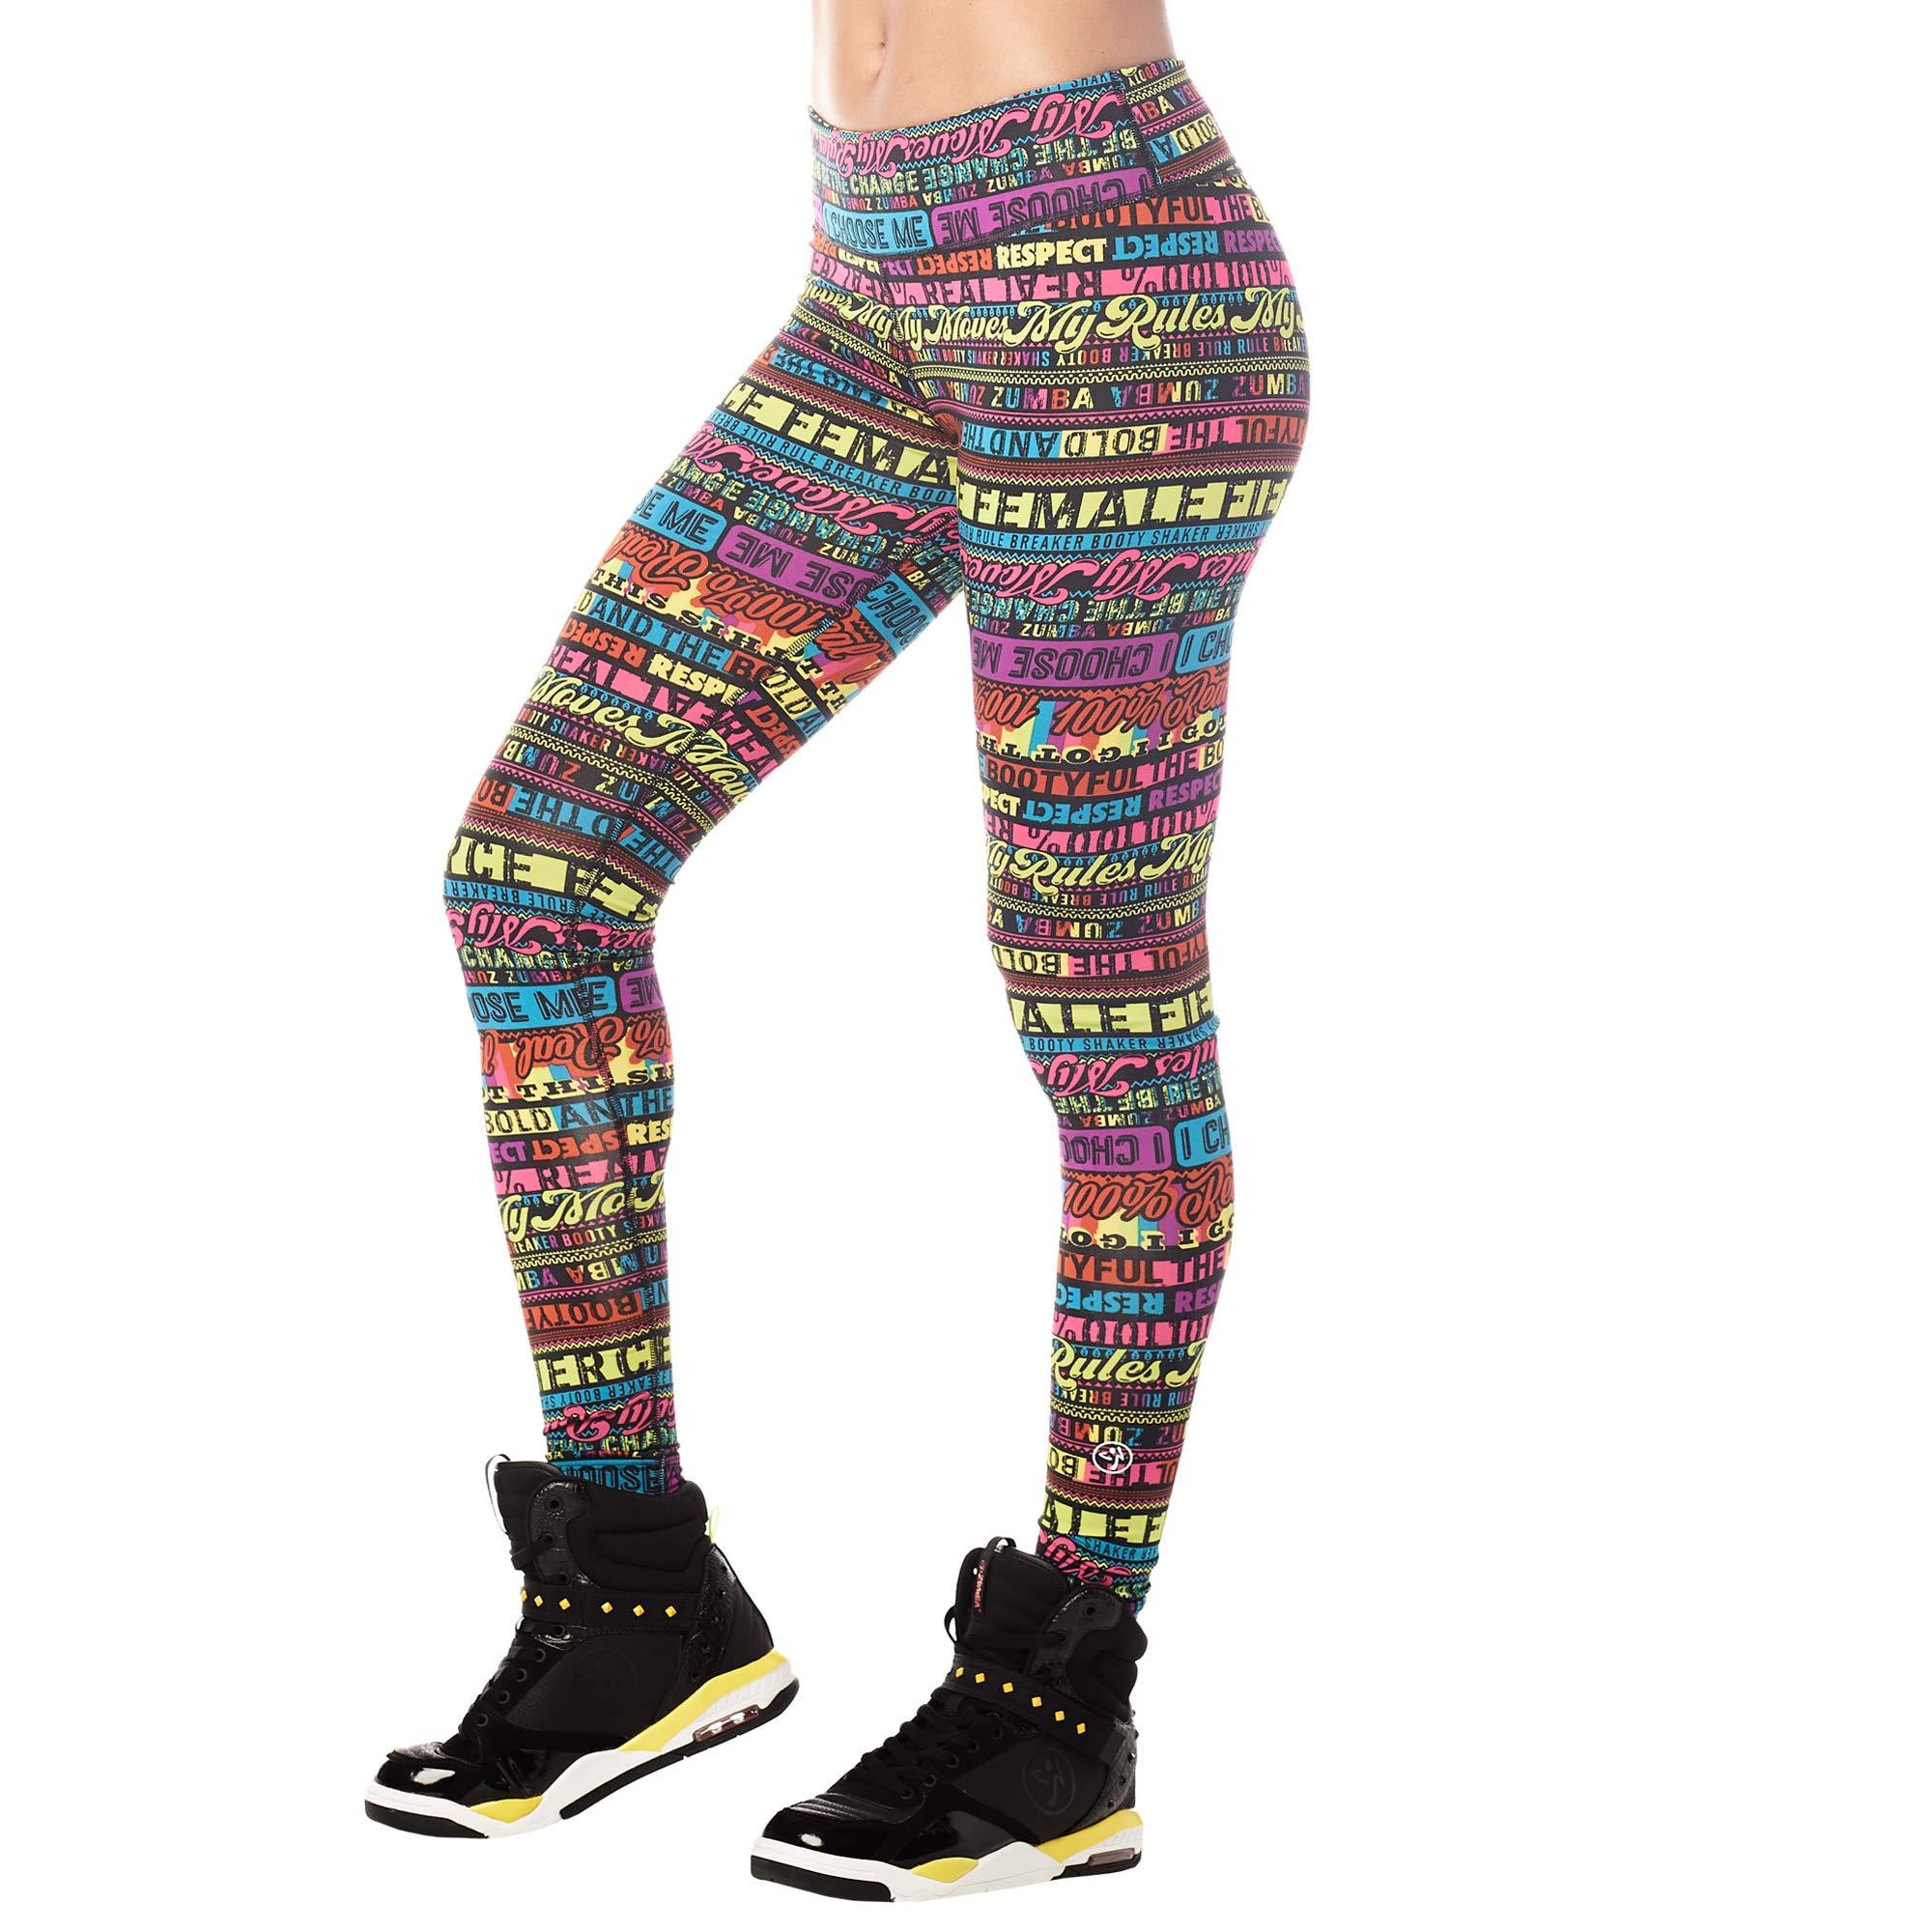 Zumba High Waisted Athletic Cropped Workout Leggings for Women, Shock Pinkish, M by Zumba